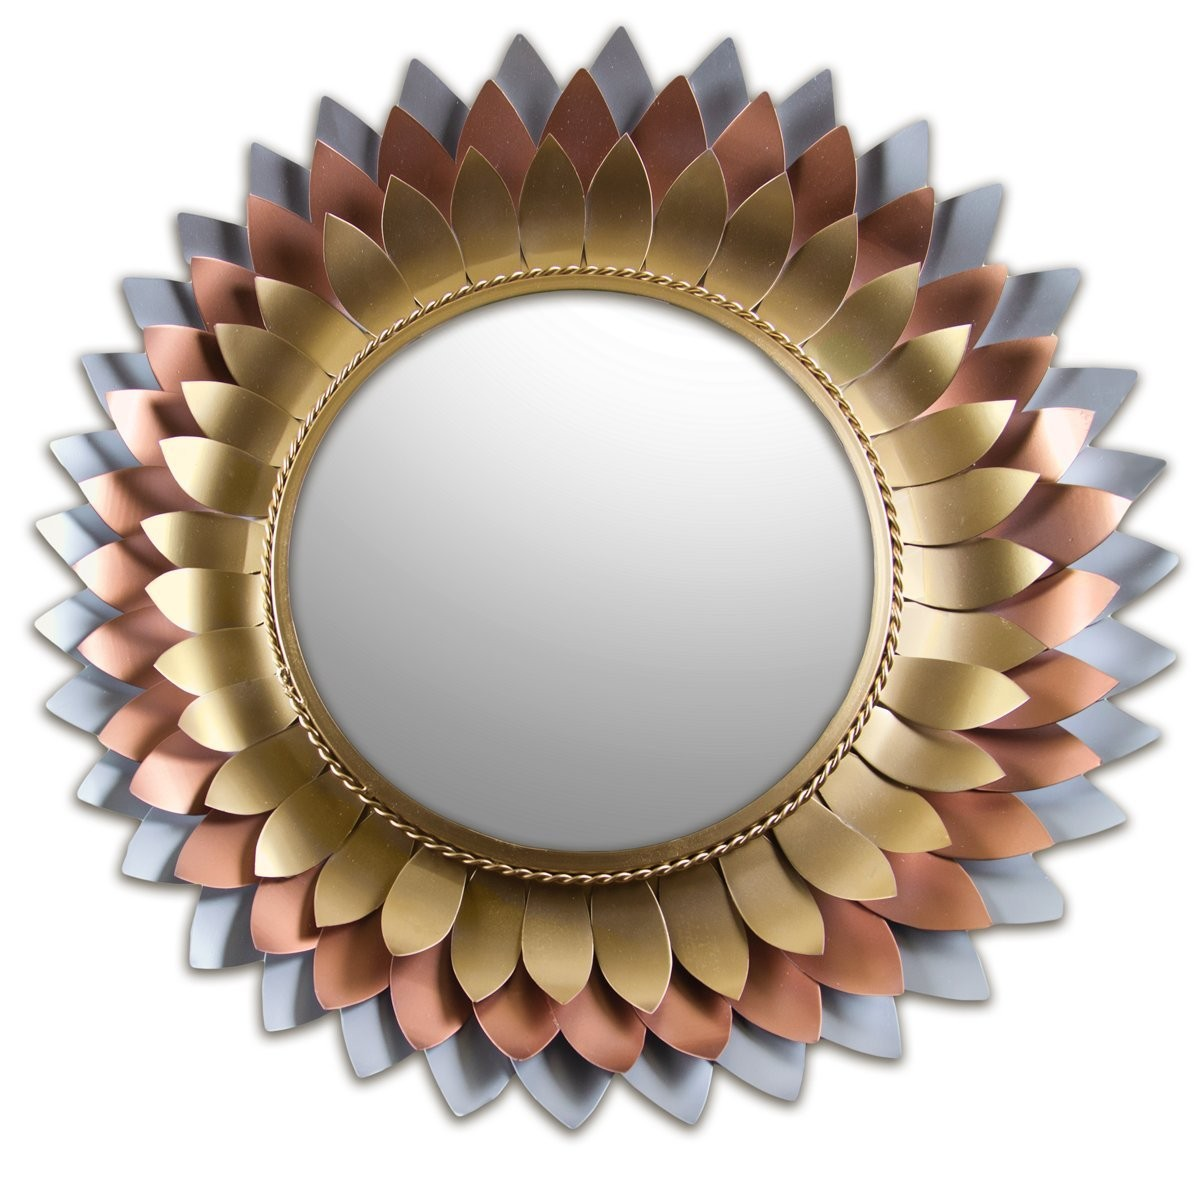 Buy 33 multilayered sunflower metal sunburst mirror online buy 33 multilayered sunflower metal sunburst mirror online decorshore amipublicfo Choice Image